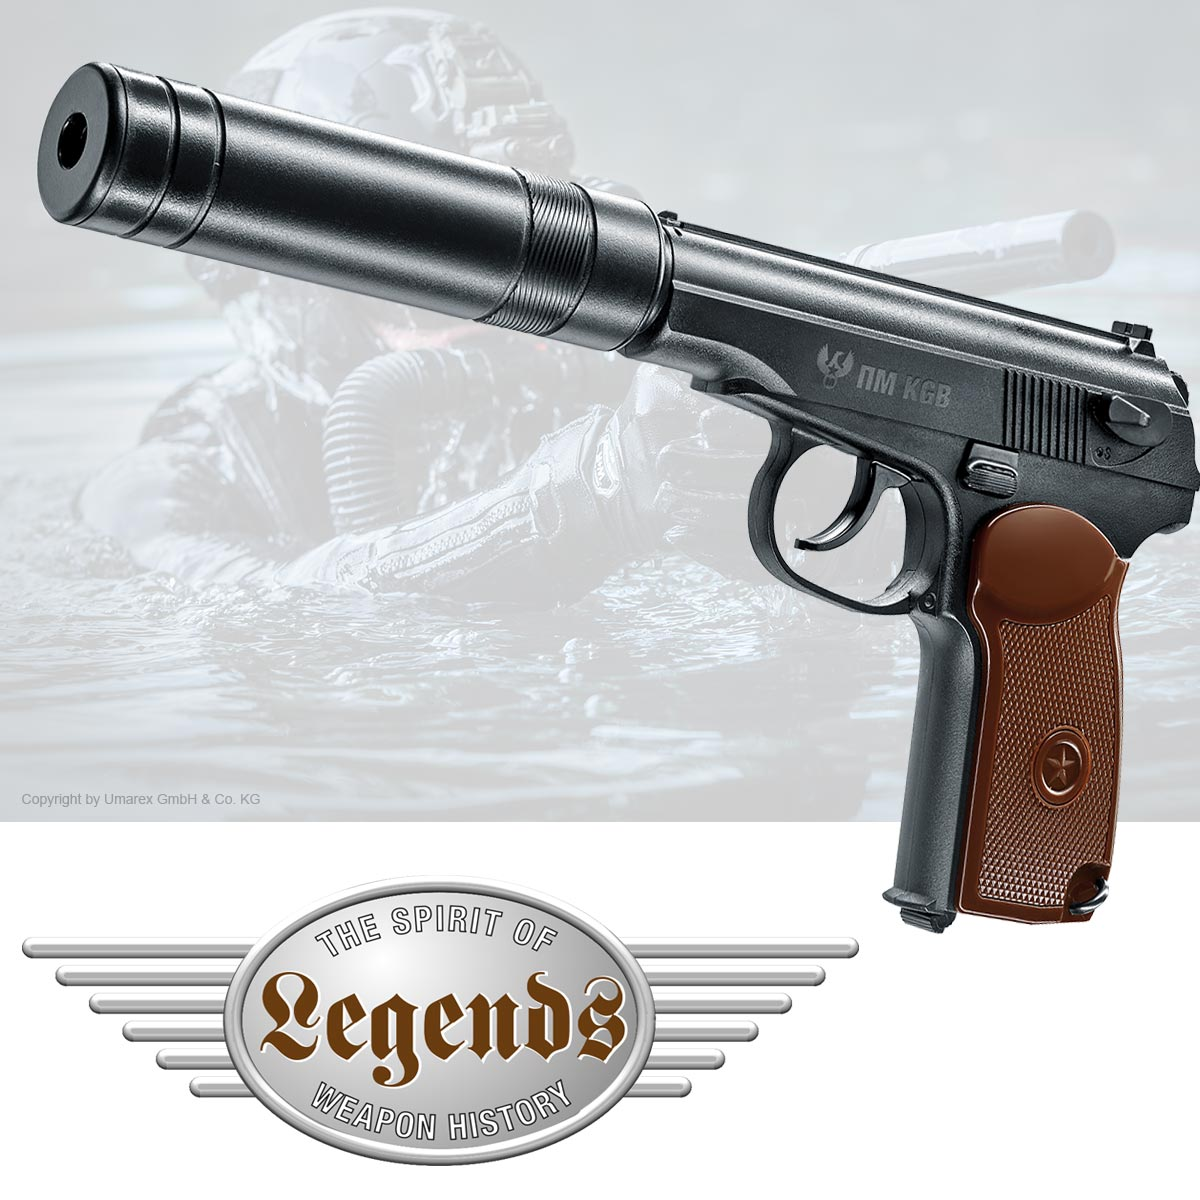 Legends PM KGB CO2 Pistole im Kaliber 4,5 mm mit braunen Griffschalen